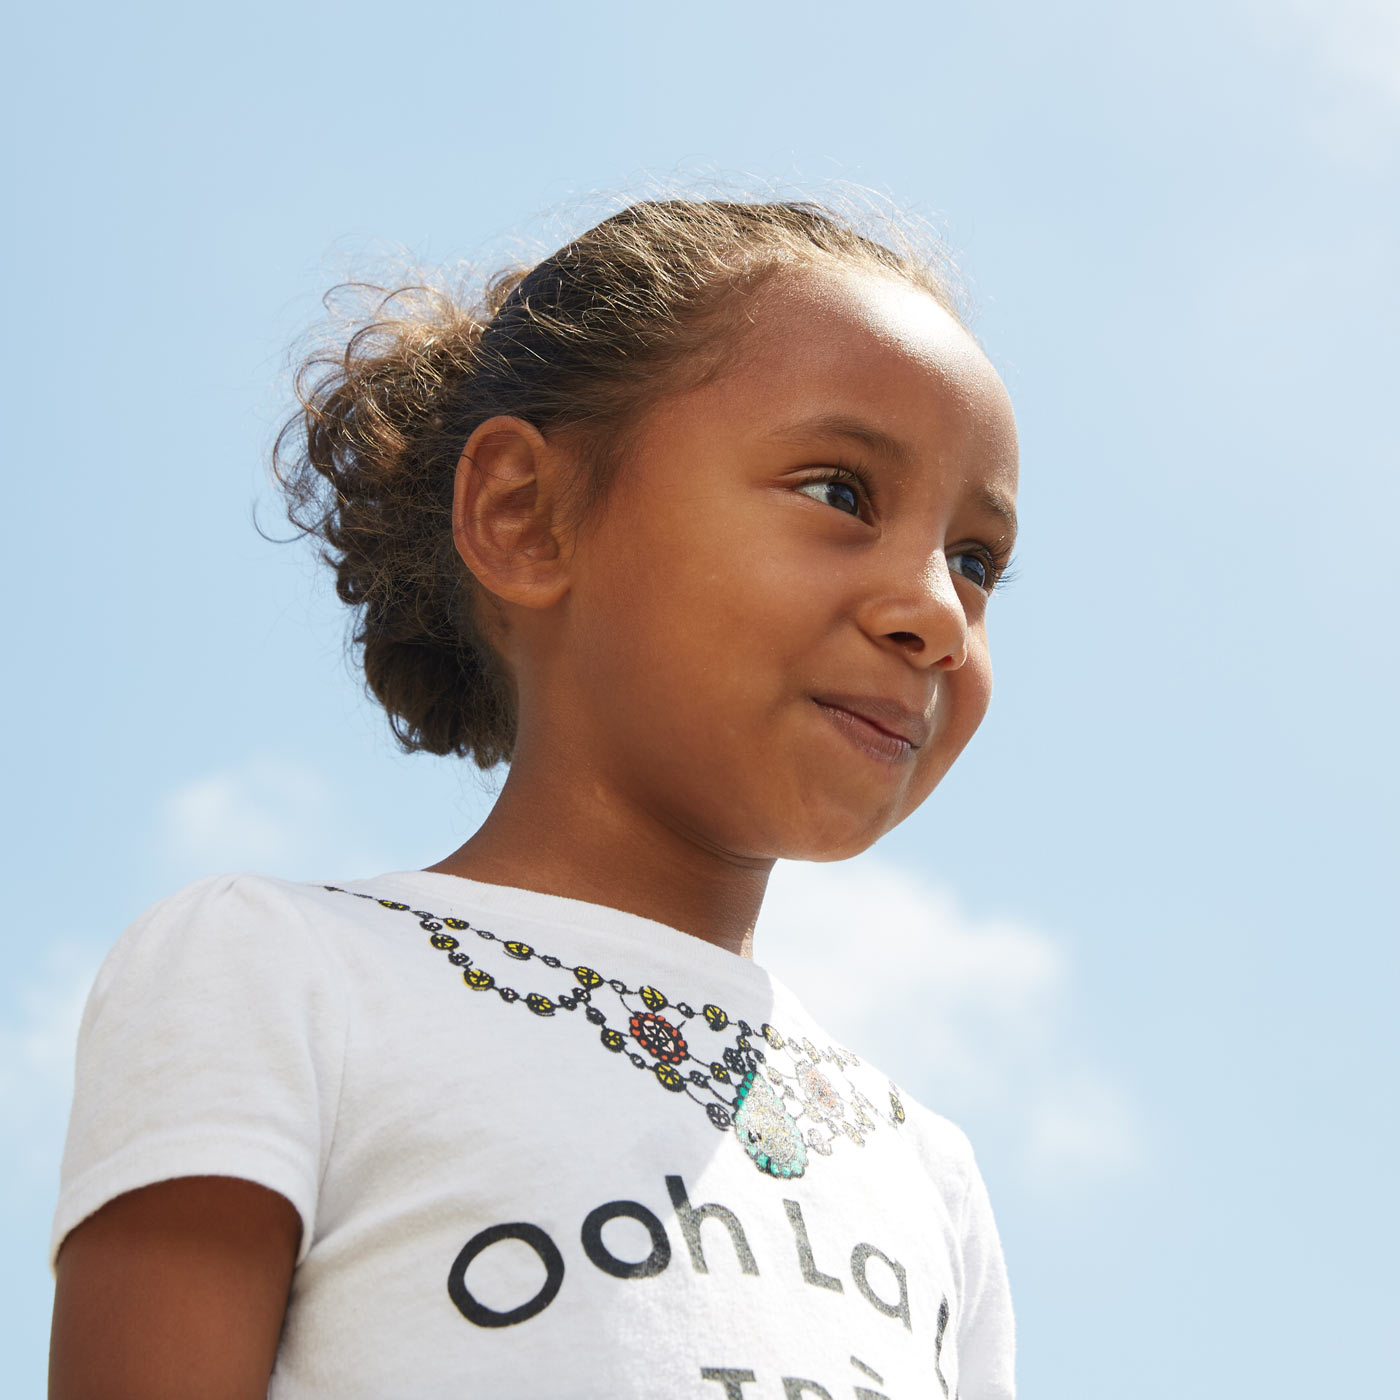 an image taken from a low vantage point of a young girl standing outside with the bright blue sky behind her